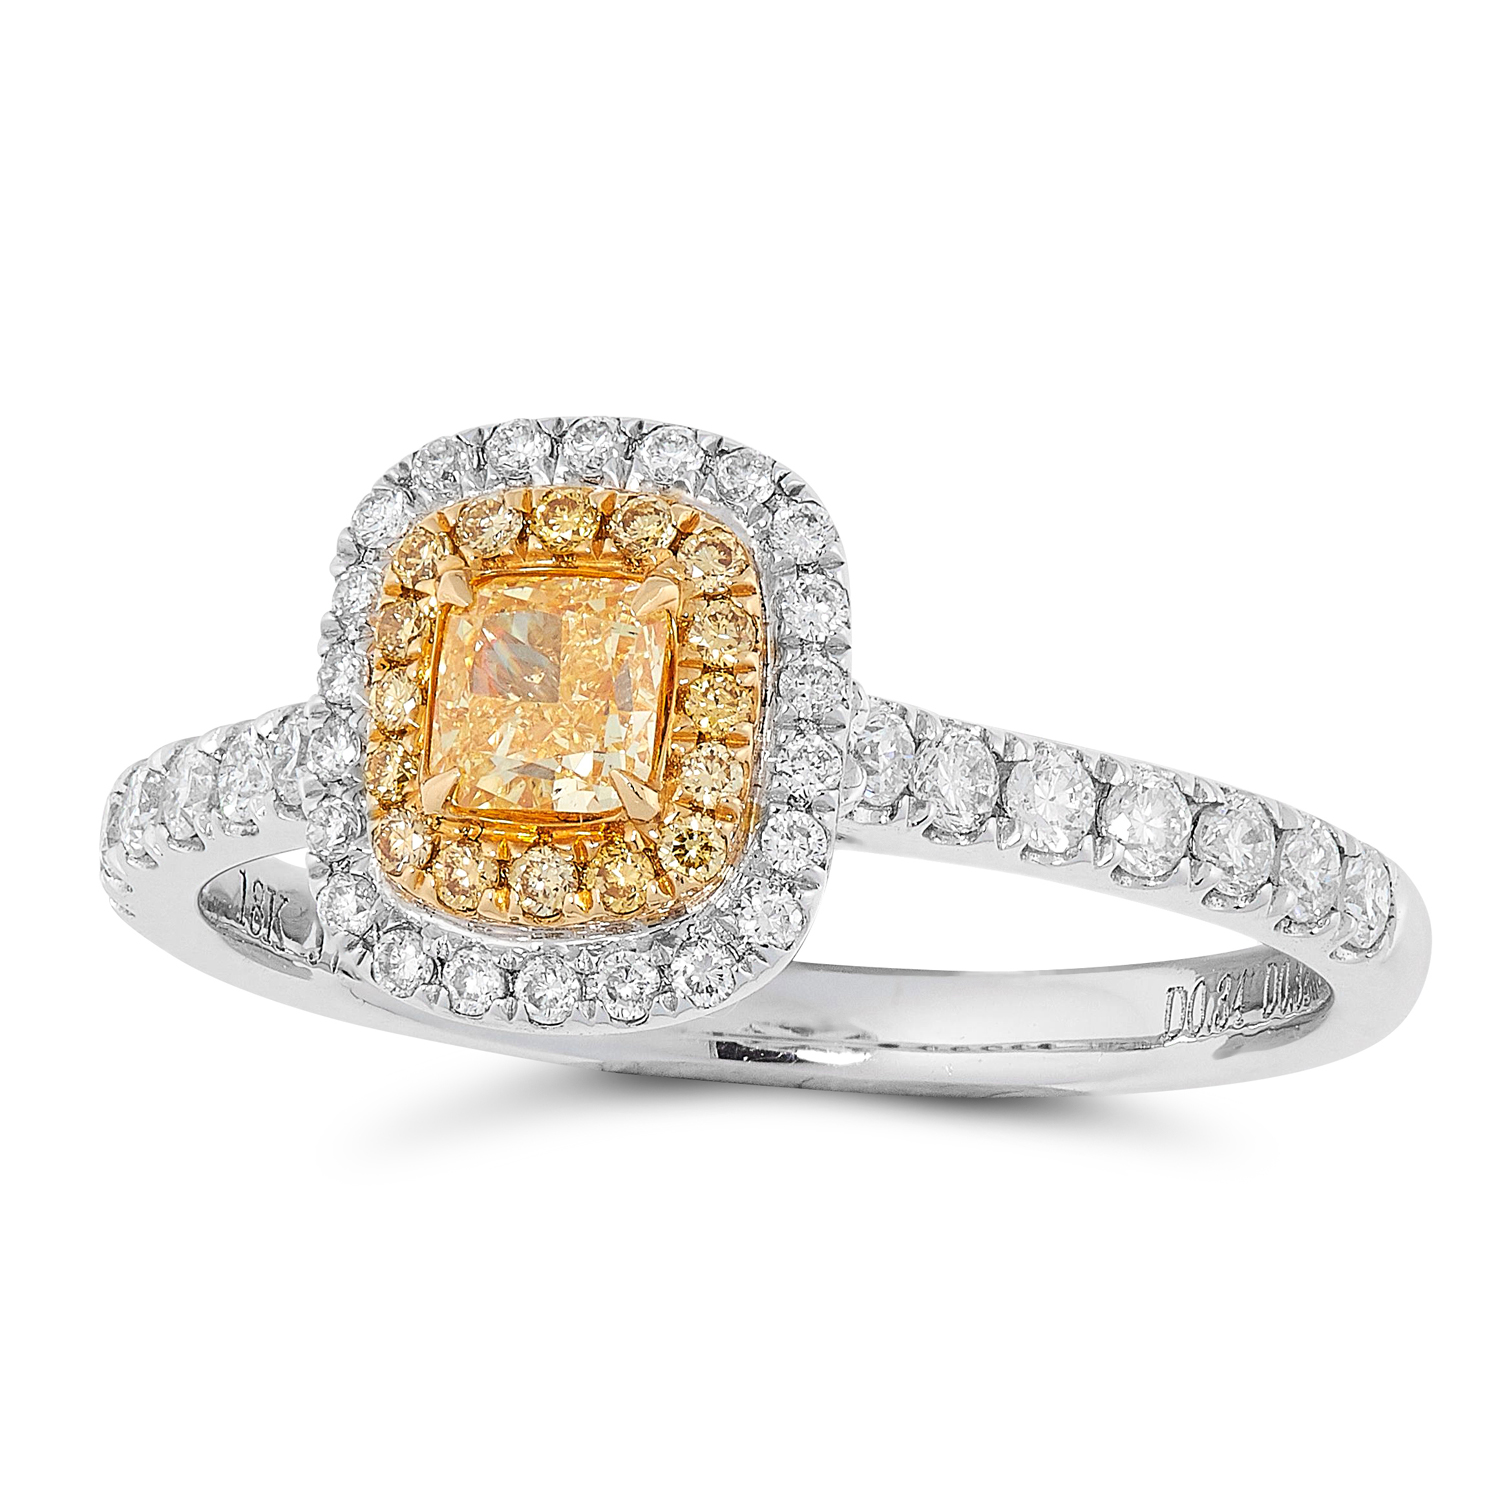 A FANCY YELLOW DIAMOND CLUSTER RING set with a fancy yellow cushion cut diamond of 0.34 carats in